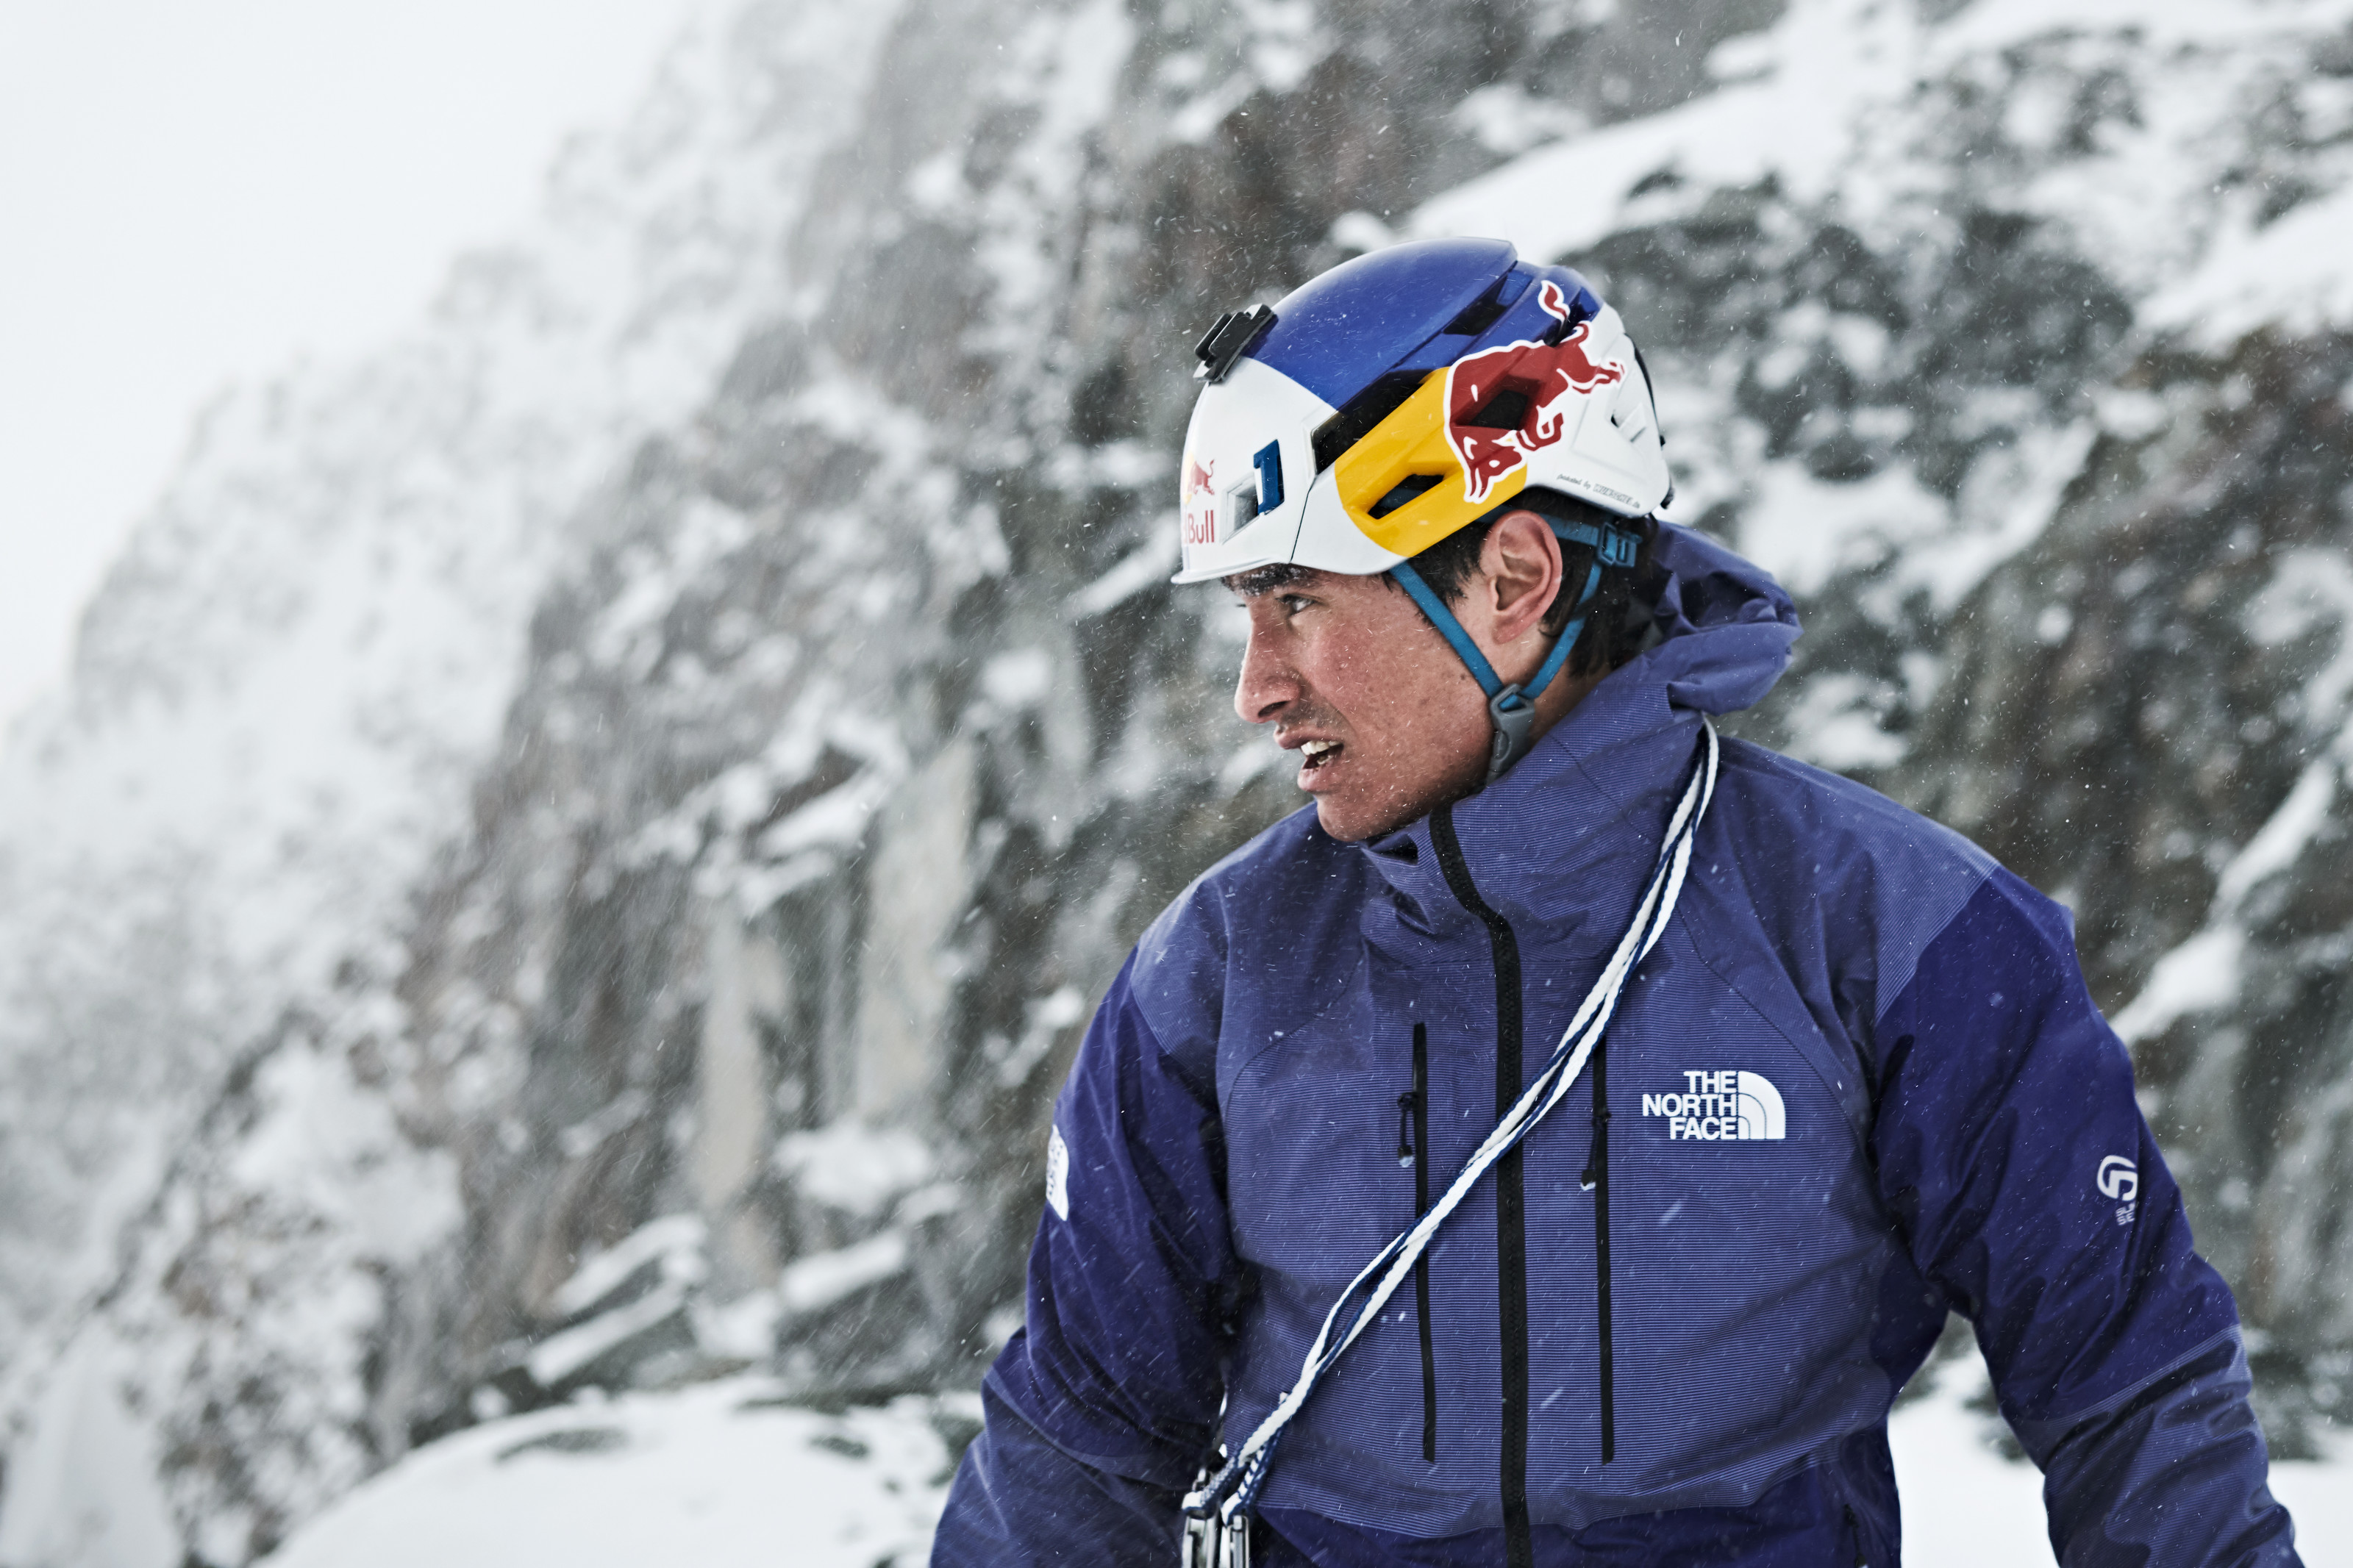 Alpinists David Lama, Jess Rosskelley, and Hansjörg Auer Presumed